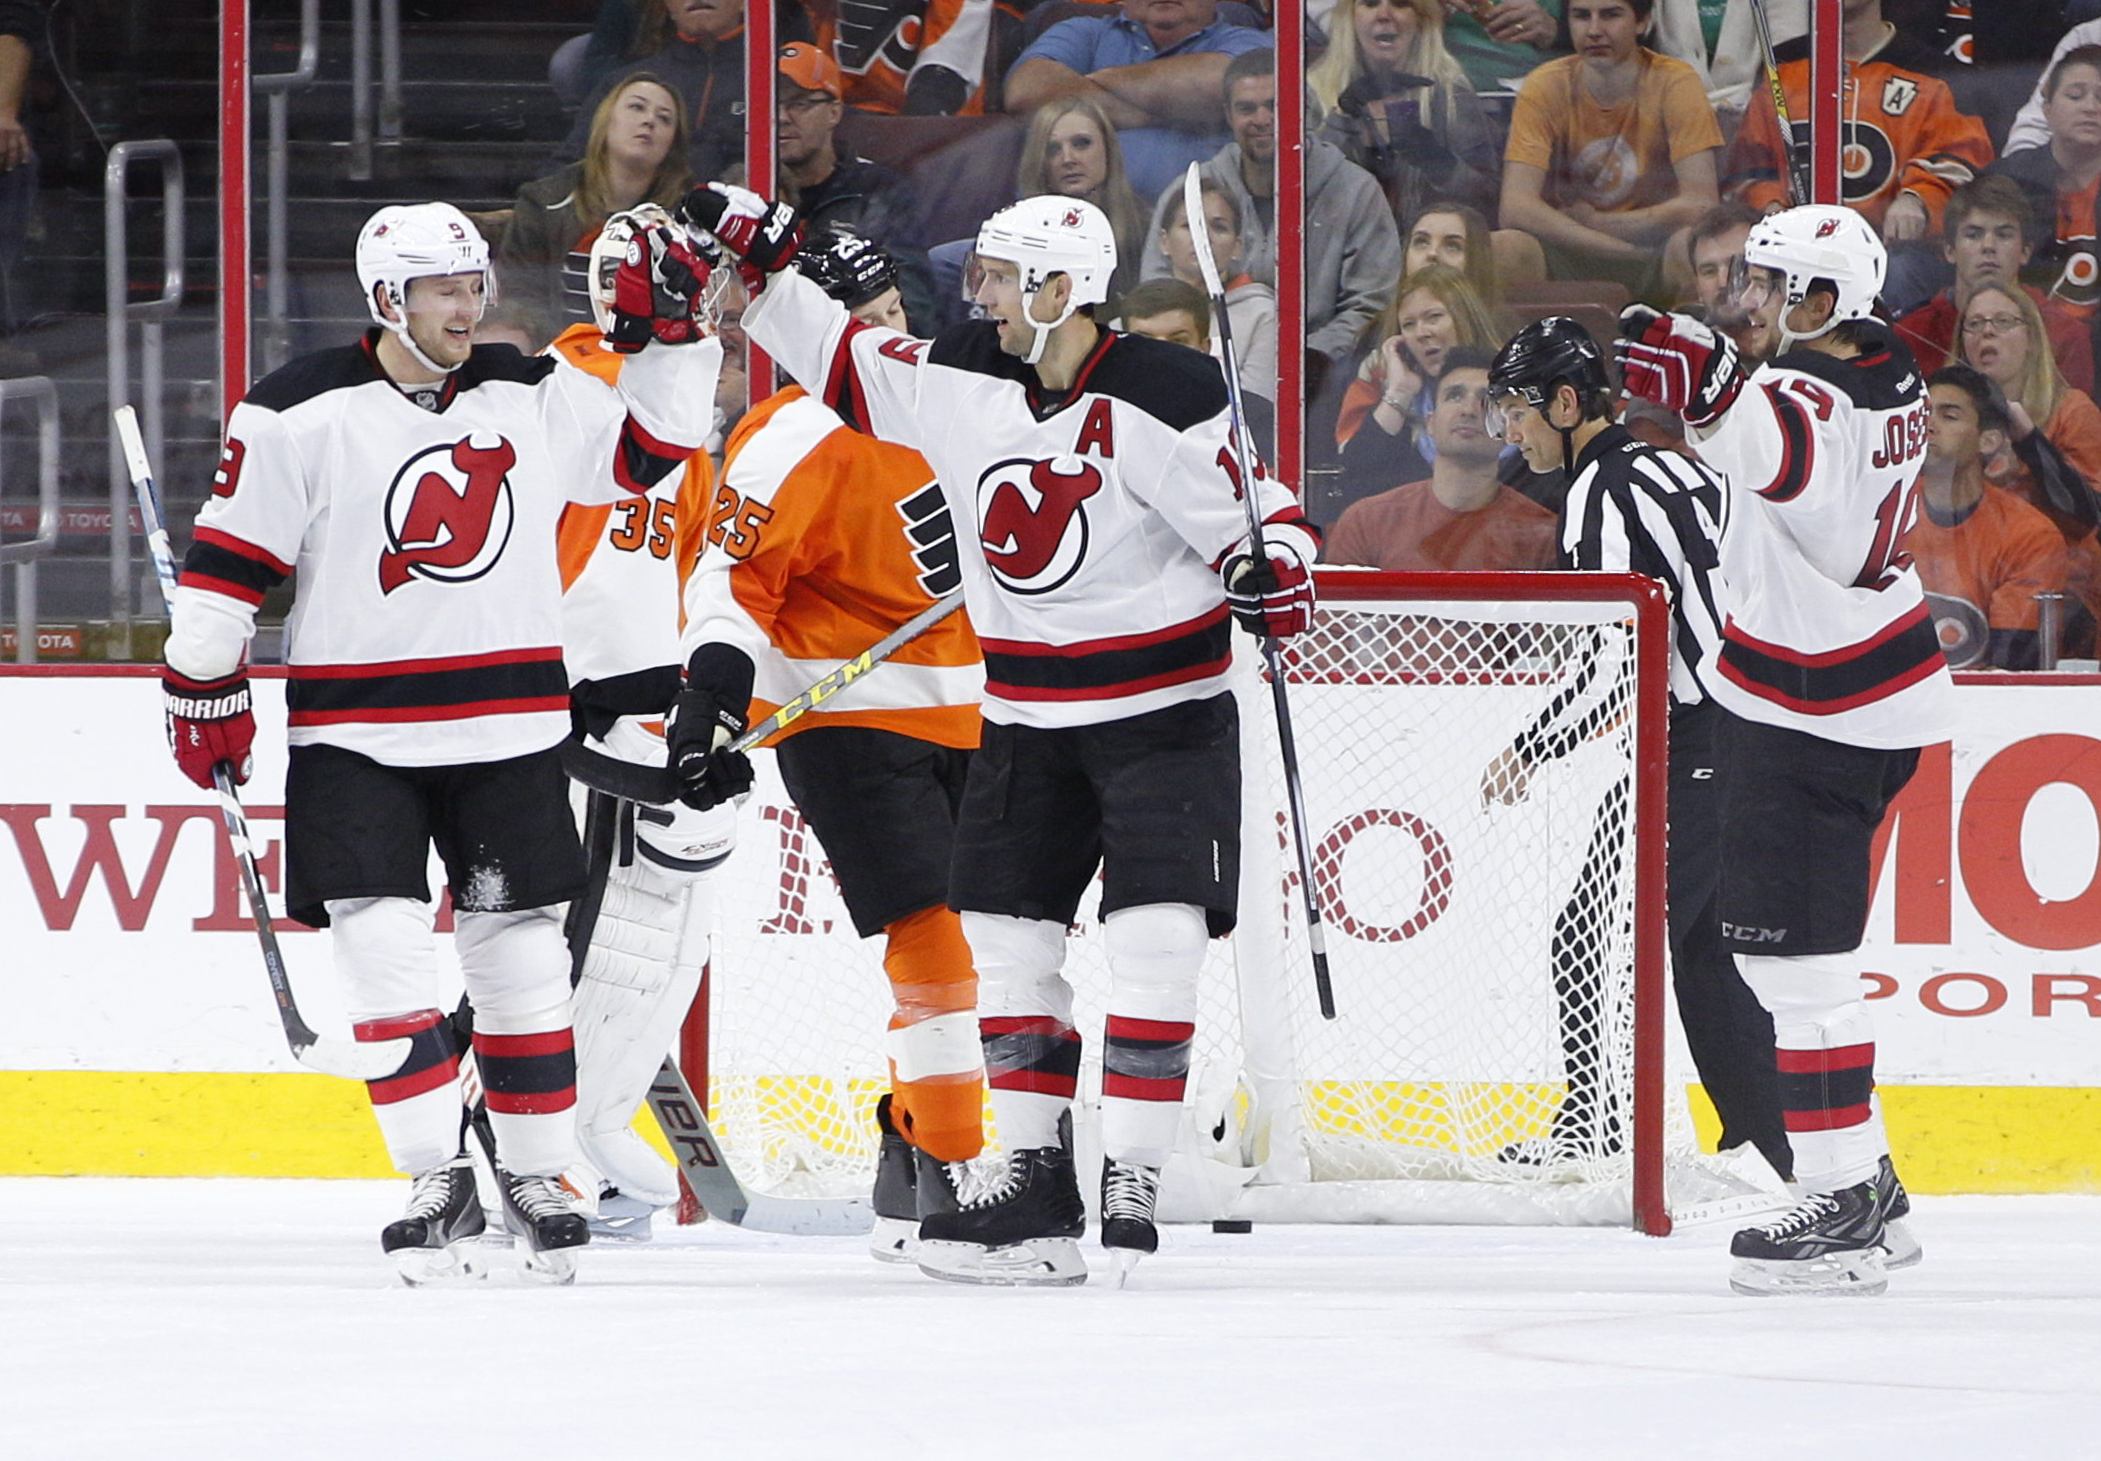 New Jersey Devils' Travis Zajac, center, celebrates his goal on Philadelphia Flyers' Steve Mason, left center, with Jiri Tlusty, left, of Czech Republic and Jacob Josefson, right  during the second period of a hockey game, Thursday, Oct. 29, 2015, in Phil